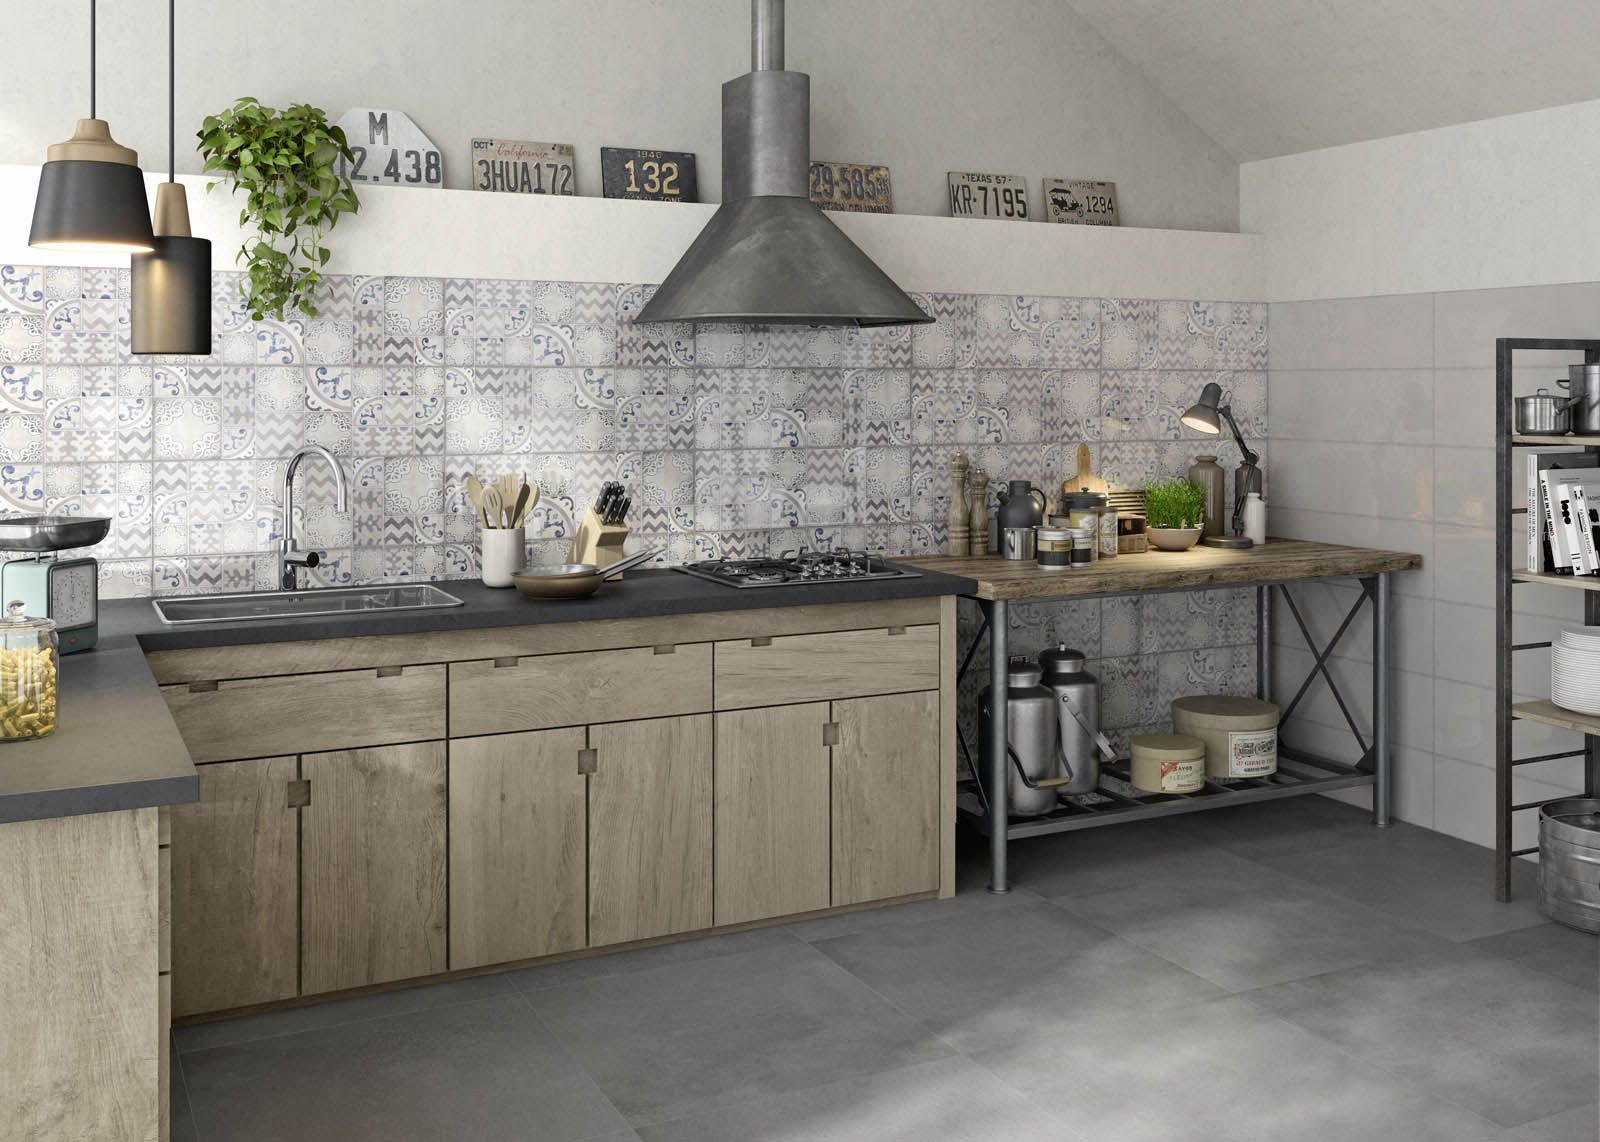 #Pottery | #ceramics | #walltiles | #Marazzi | #kitchen | # Part 18